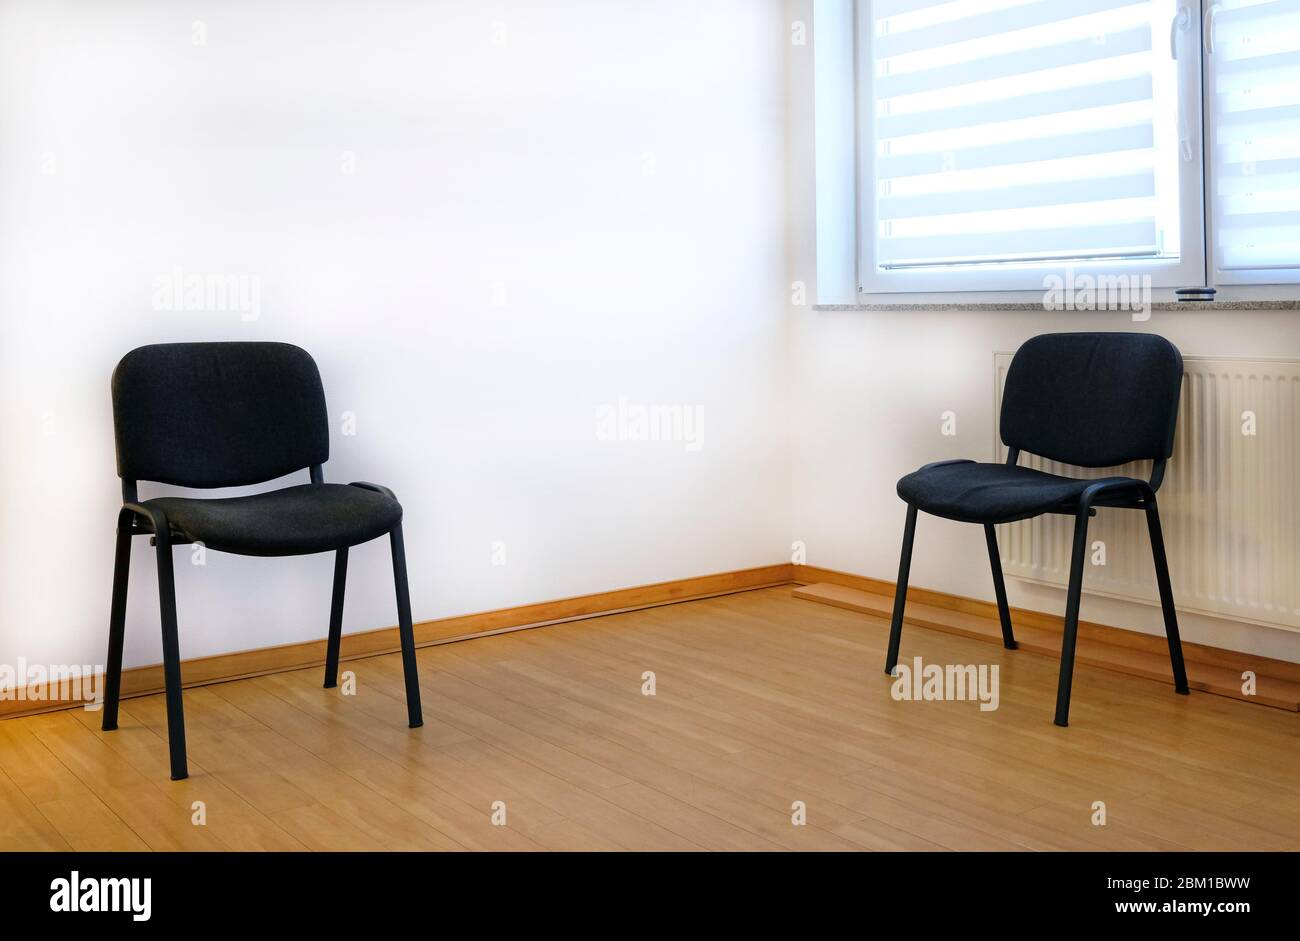 Two Chairs In The Waiting Room Of A Doctor S Office Stock Photo Alamy